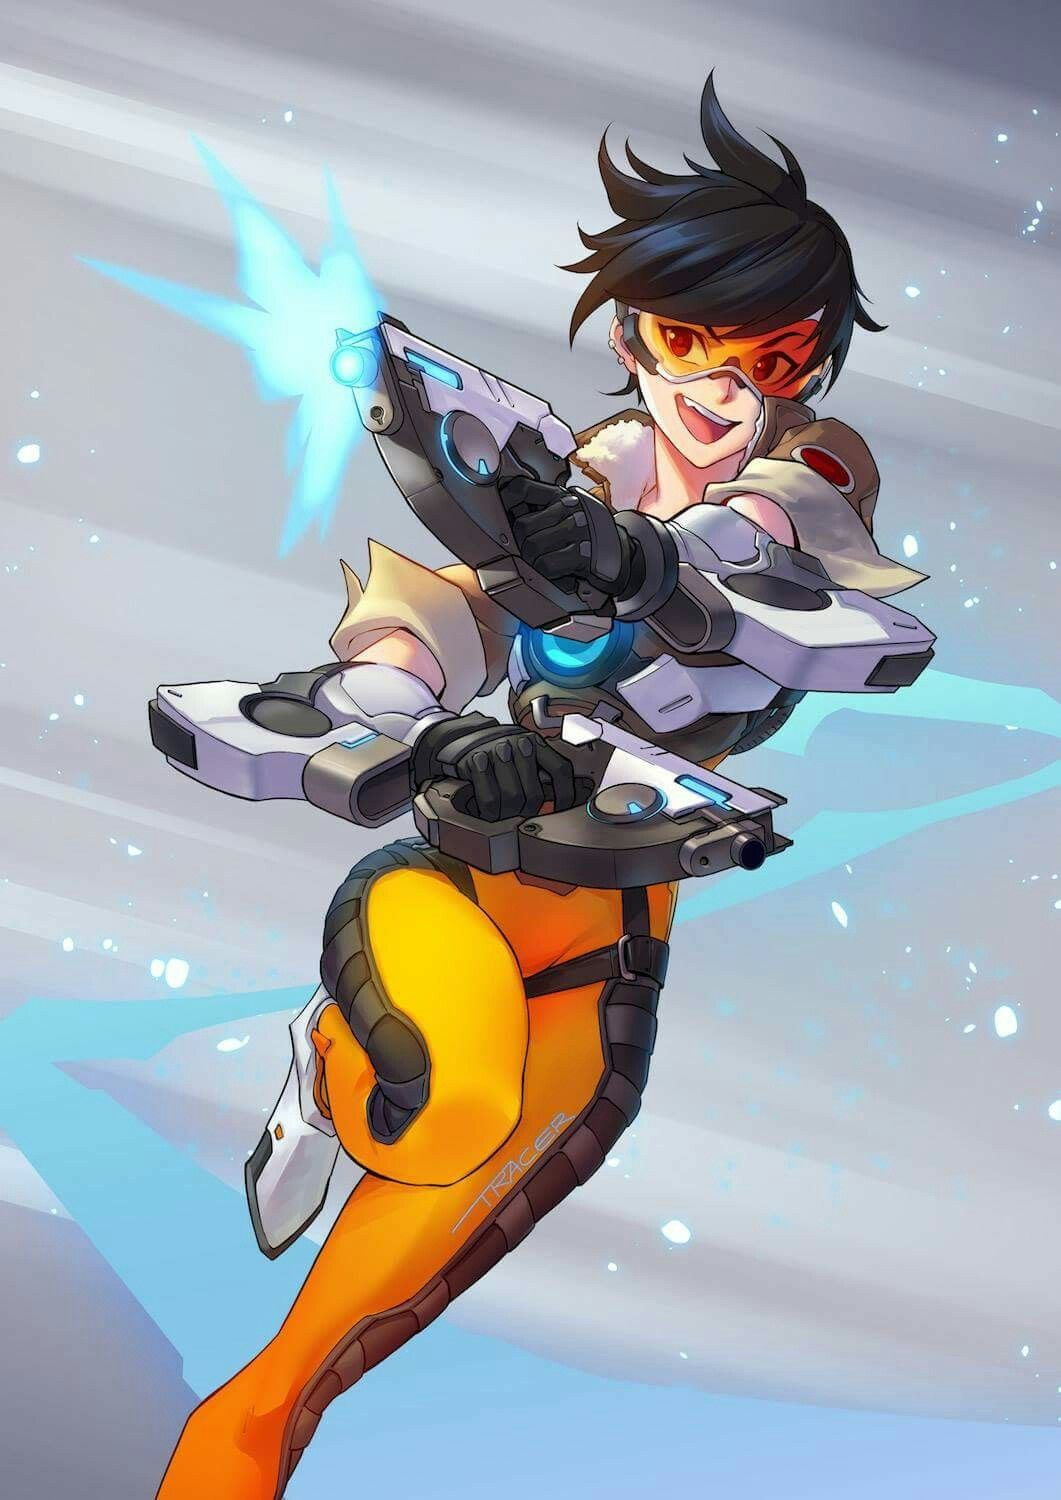 Pin By Silver Chicmanatee On Overwatch Overwatch Tracer Overwatch Comic Overwatch Wallpapers